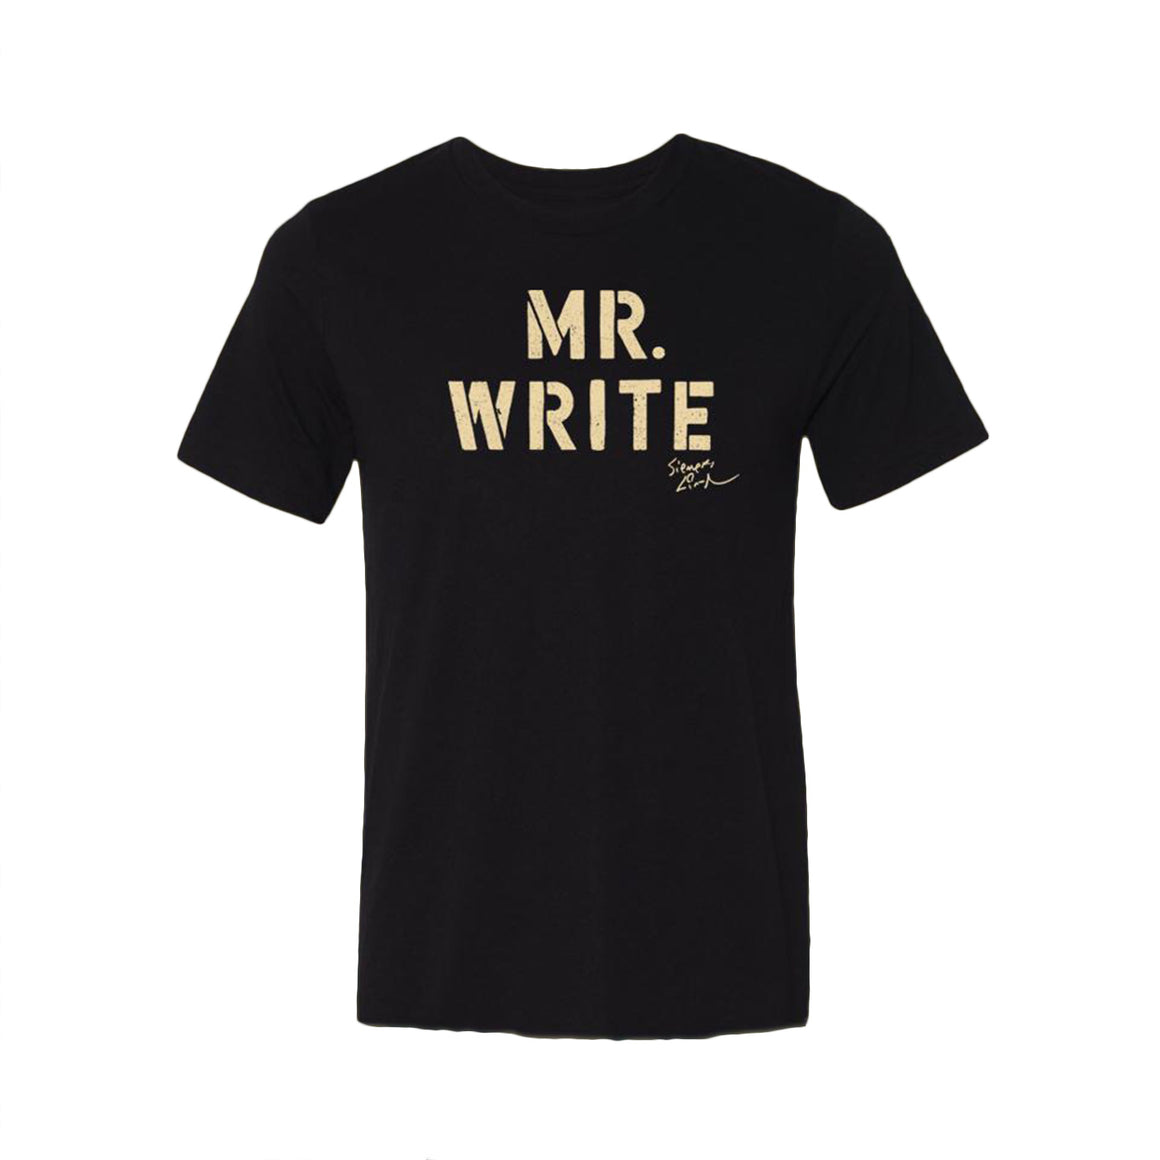 MR. WRITE - Kid's Crew